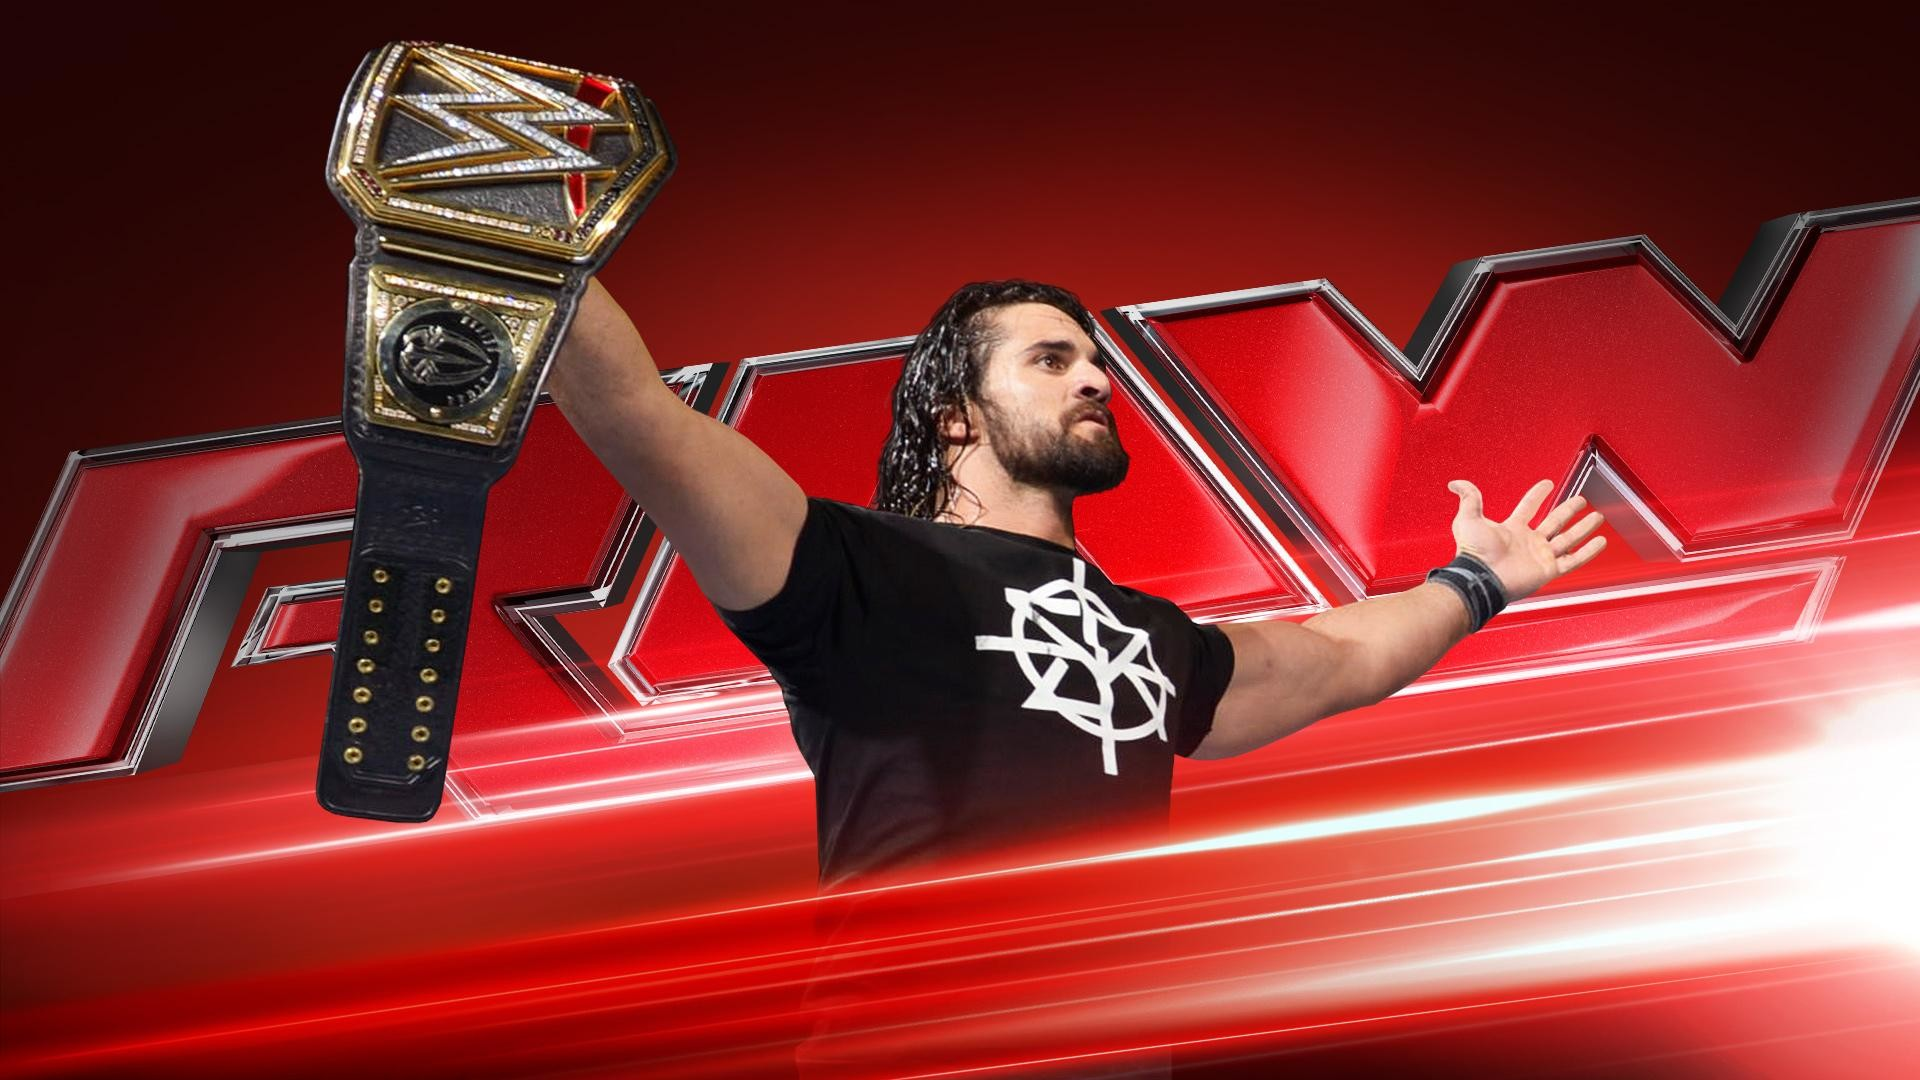 WWE Monday Night Raw Preview for 05.23.2016: Seth Rollins Returns, Shane  and Stephanie Family Drama, Roman Reigns, Dana Brooke Joins the Flairs